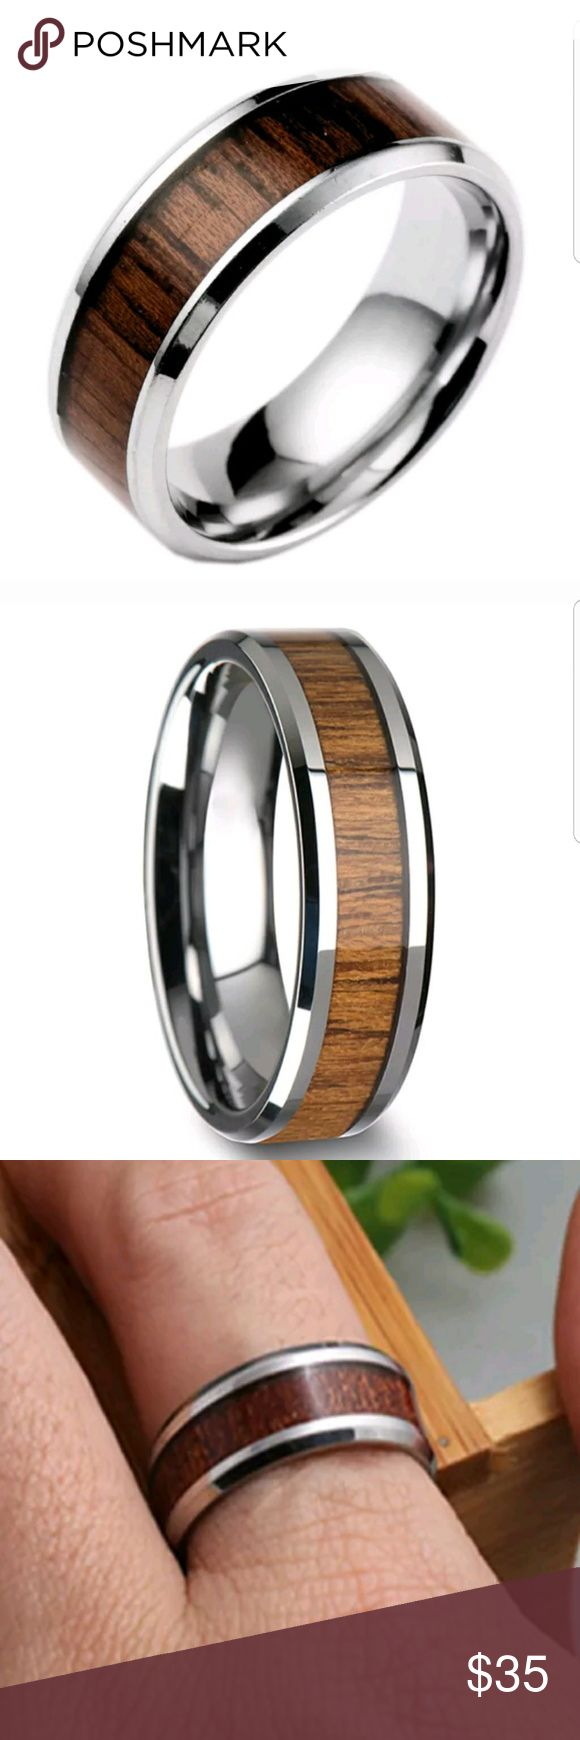 Men's  Silver and Wood Inlay Ring 9 , 10 STAINLESS  SILVER WITH WOOD INLAY SIZE 9, 10 AprilsPlace Accessories Jewelry